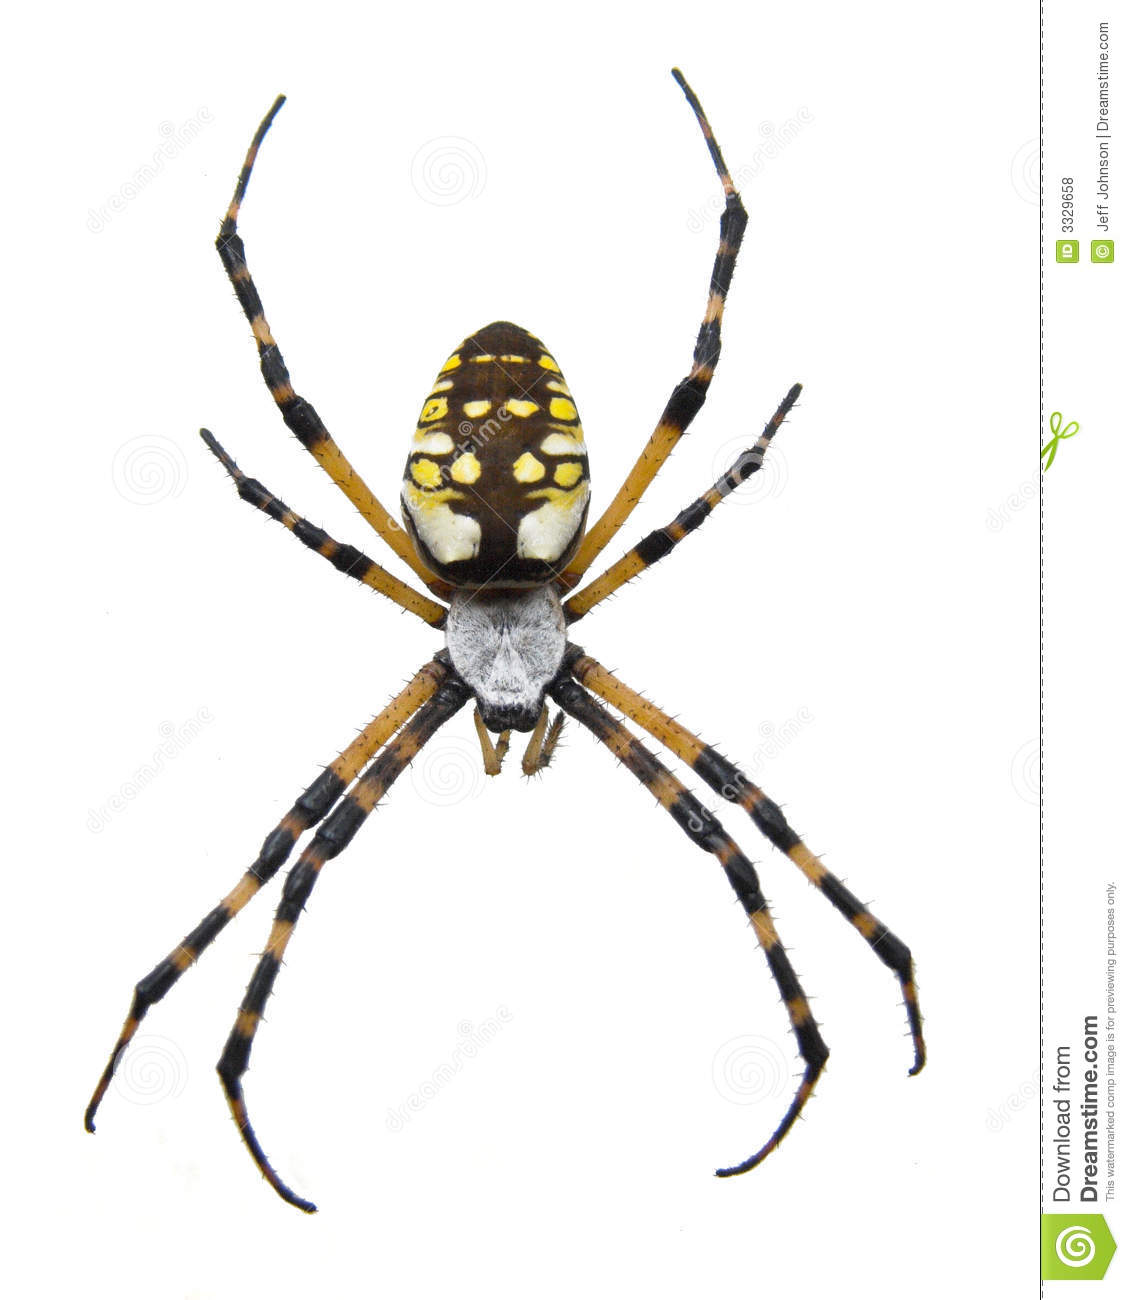 Macro of a garden spider stock photo image of scary yellow 3329658 for Yellow garden spider poisonous